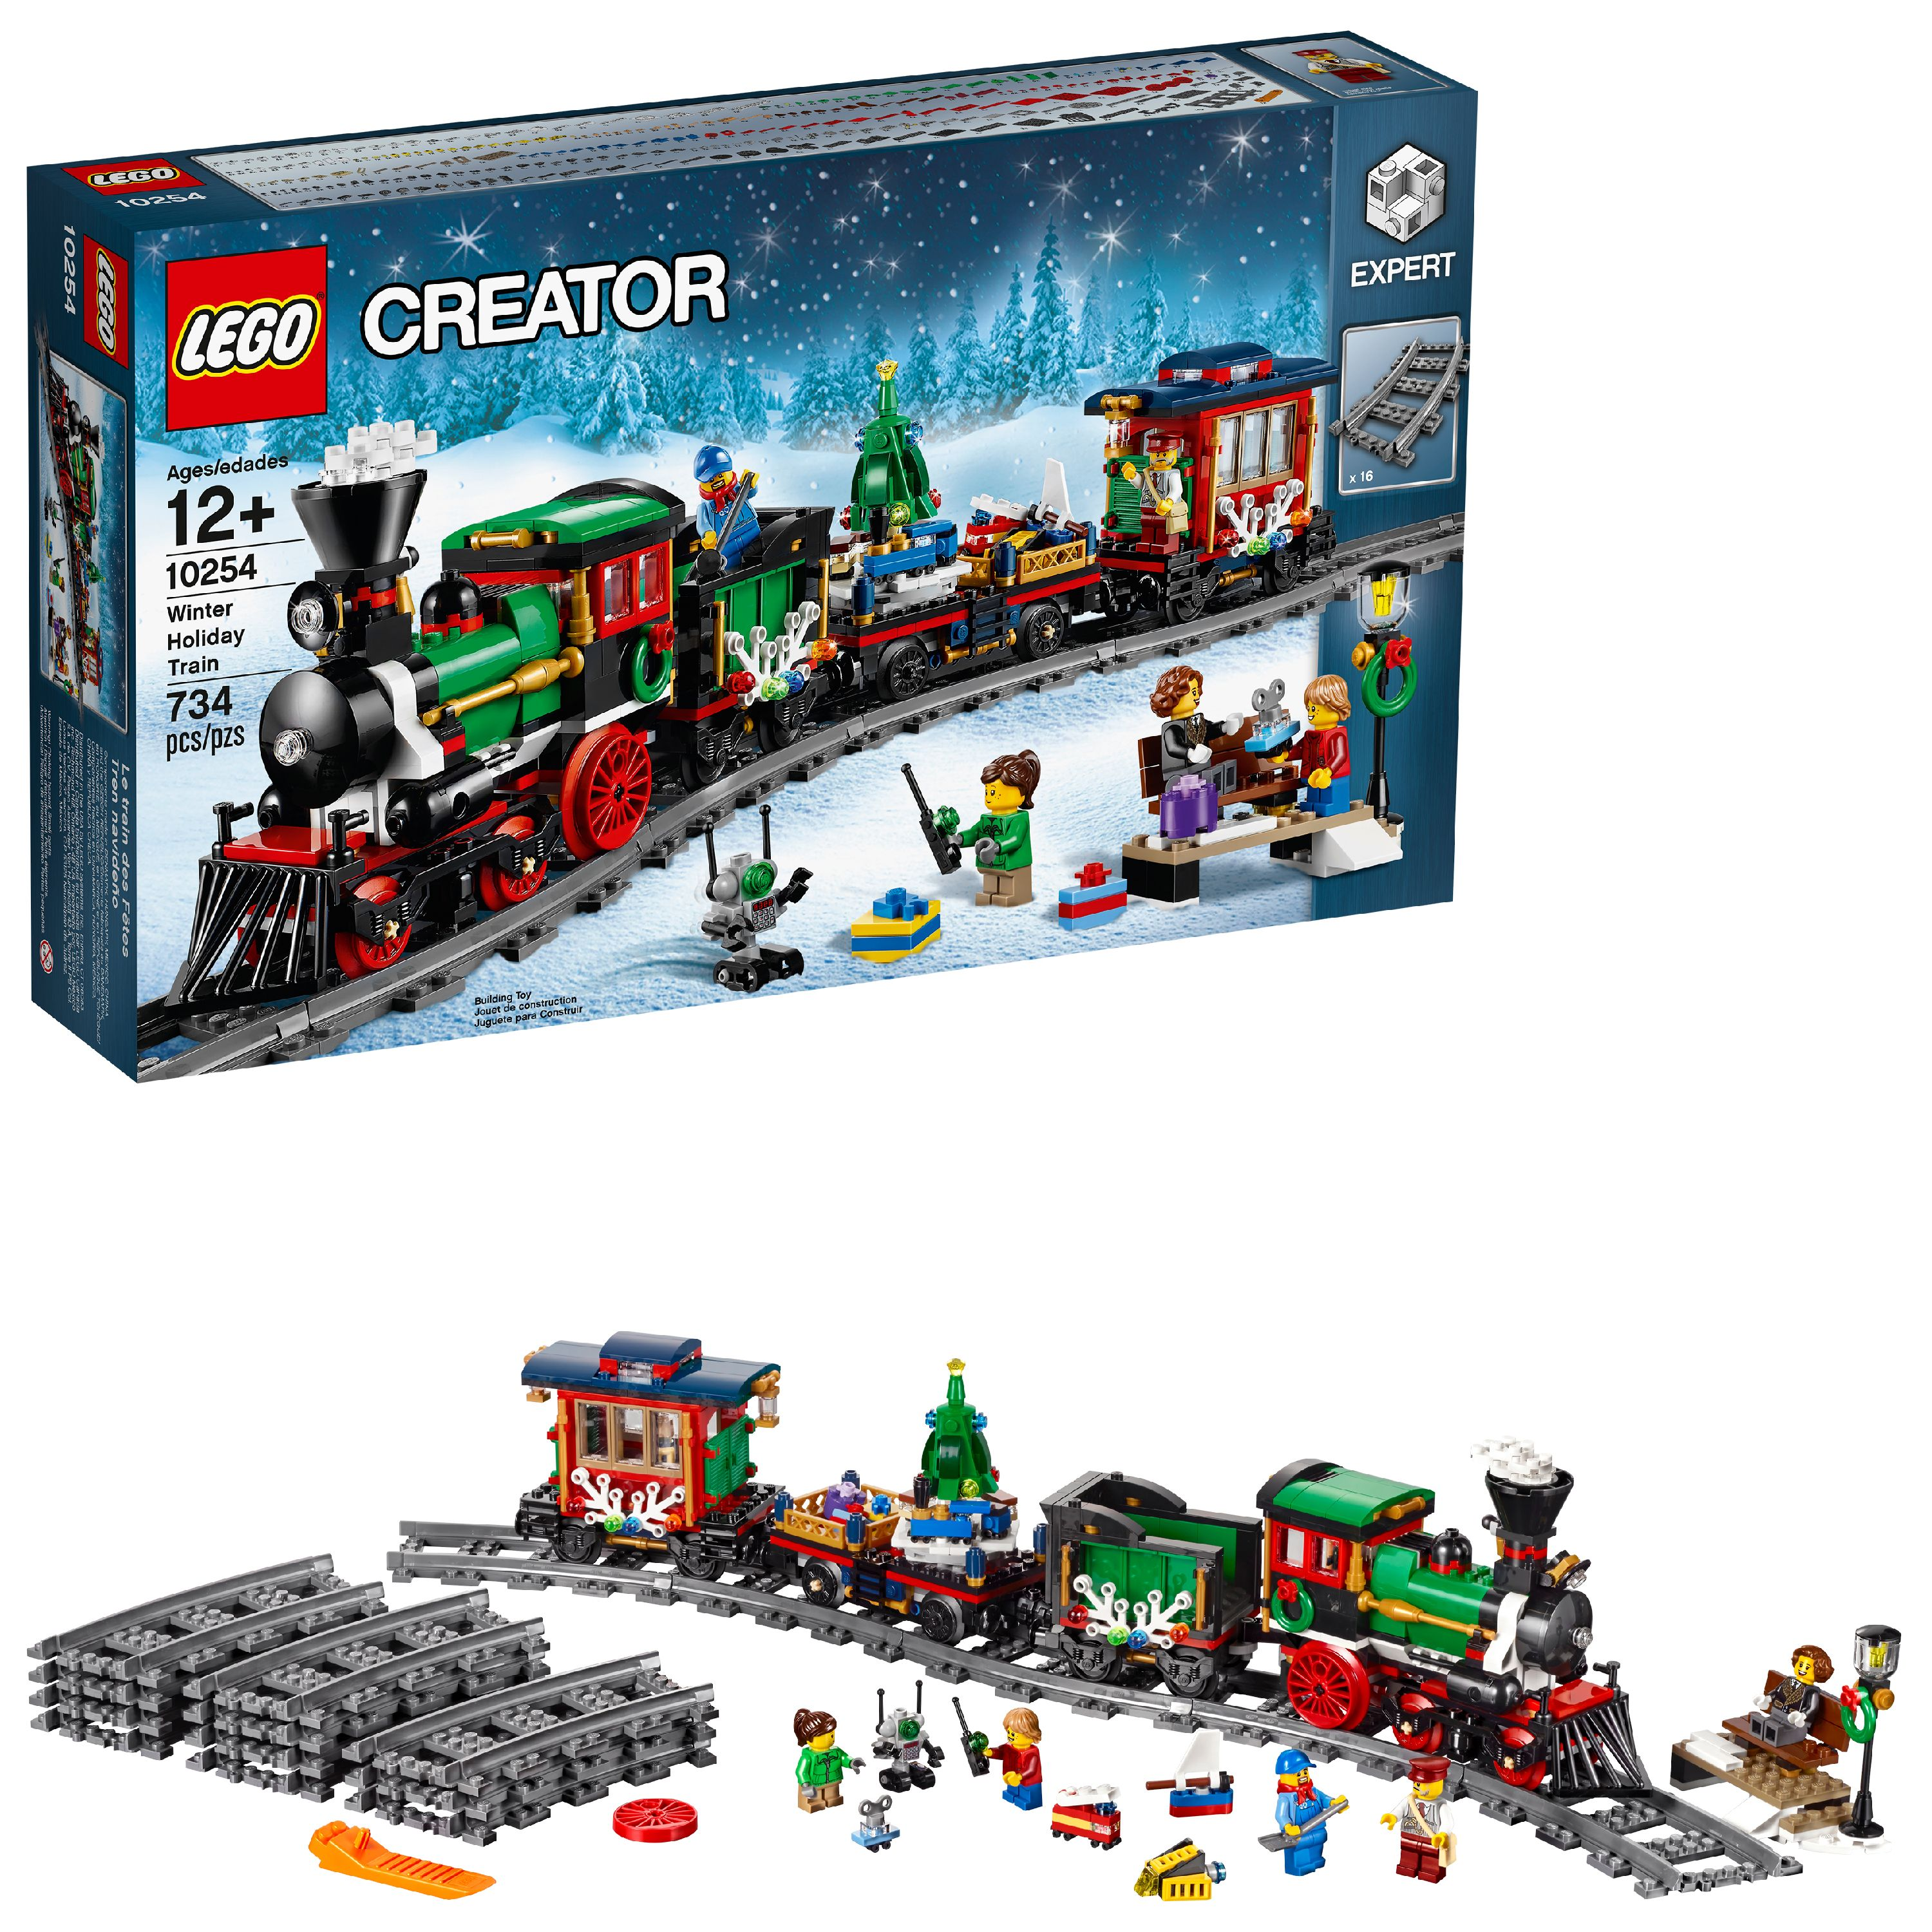 Lego Creator Expert Winter Holiday Train 10254 by LEGO System Inc